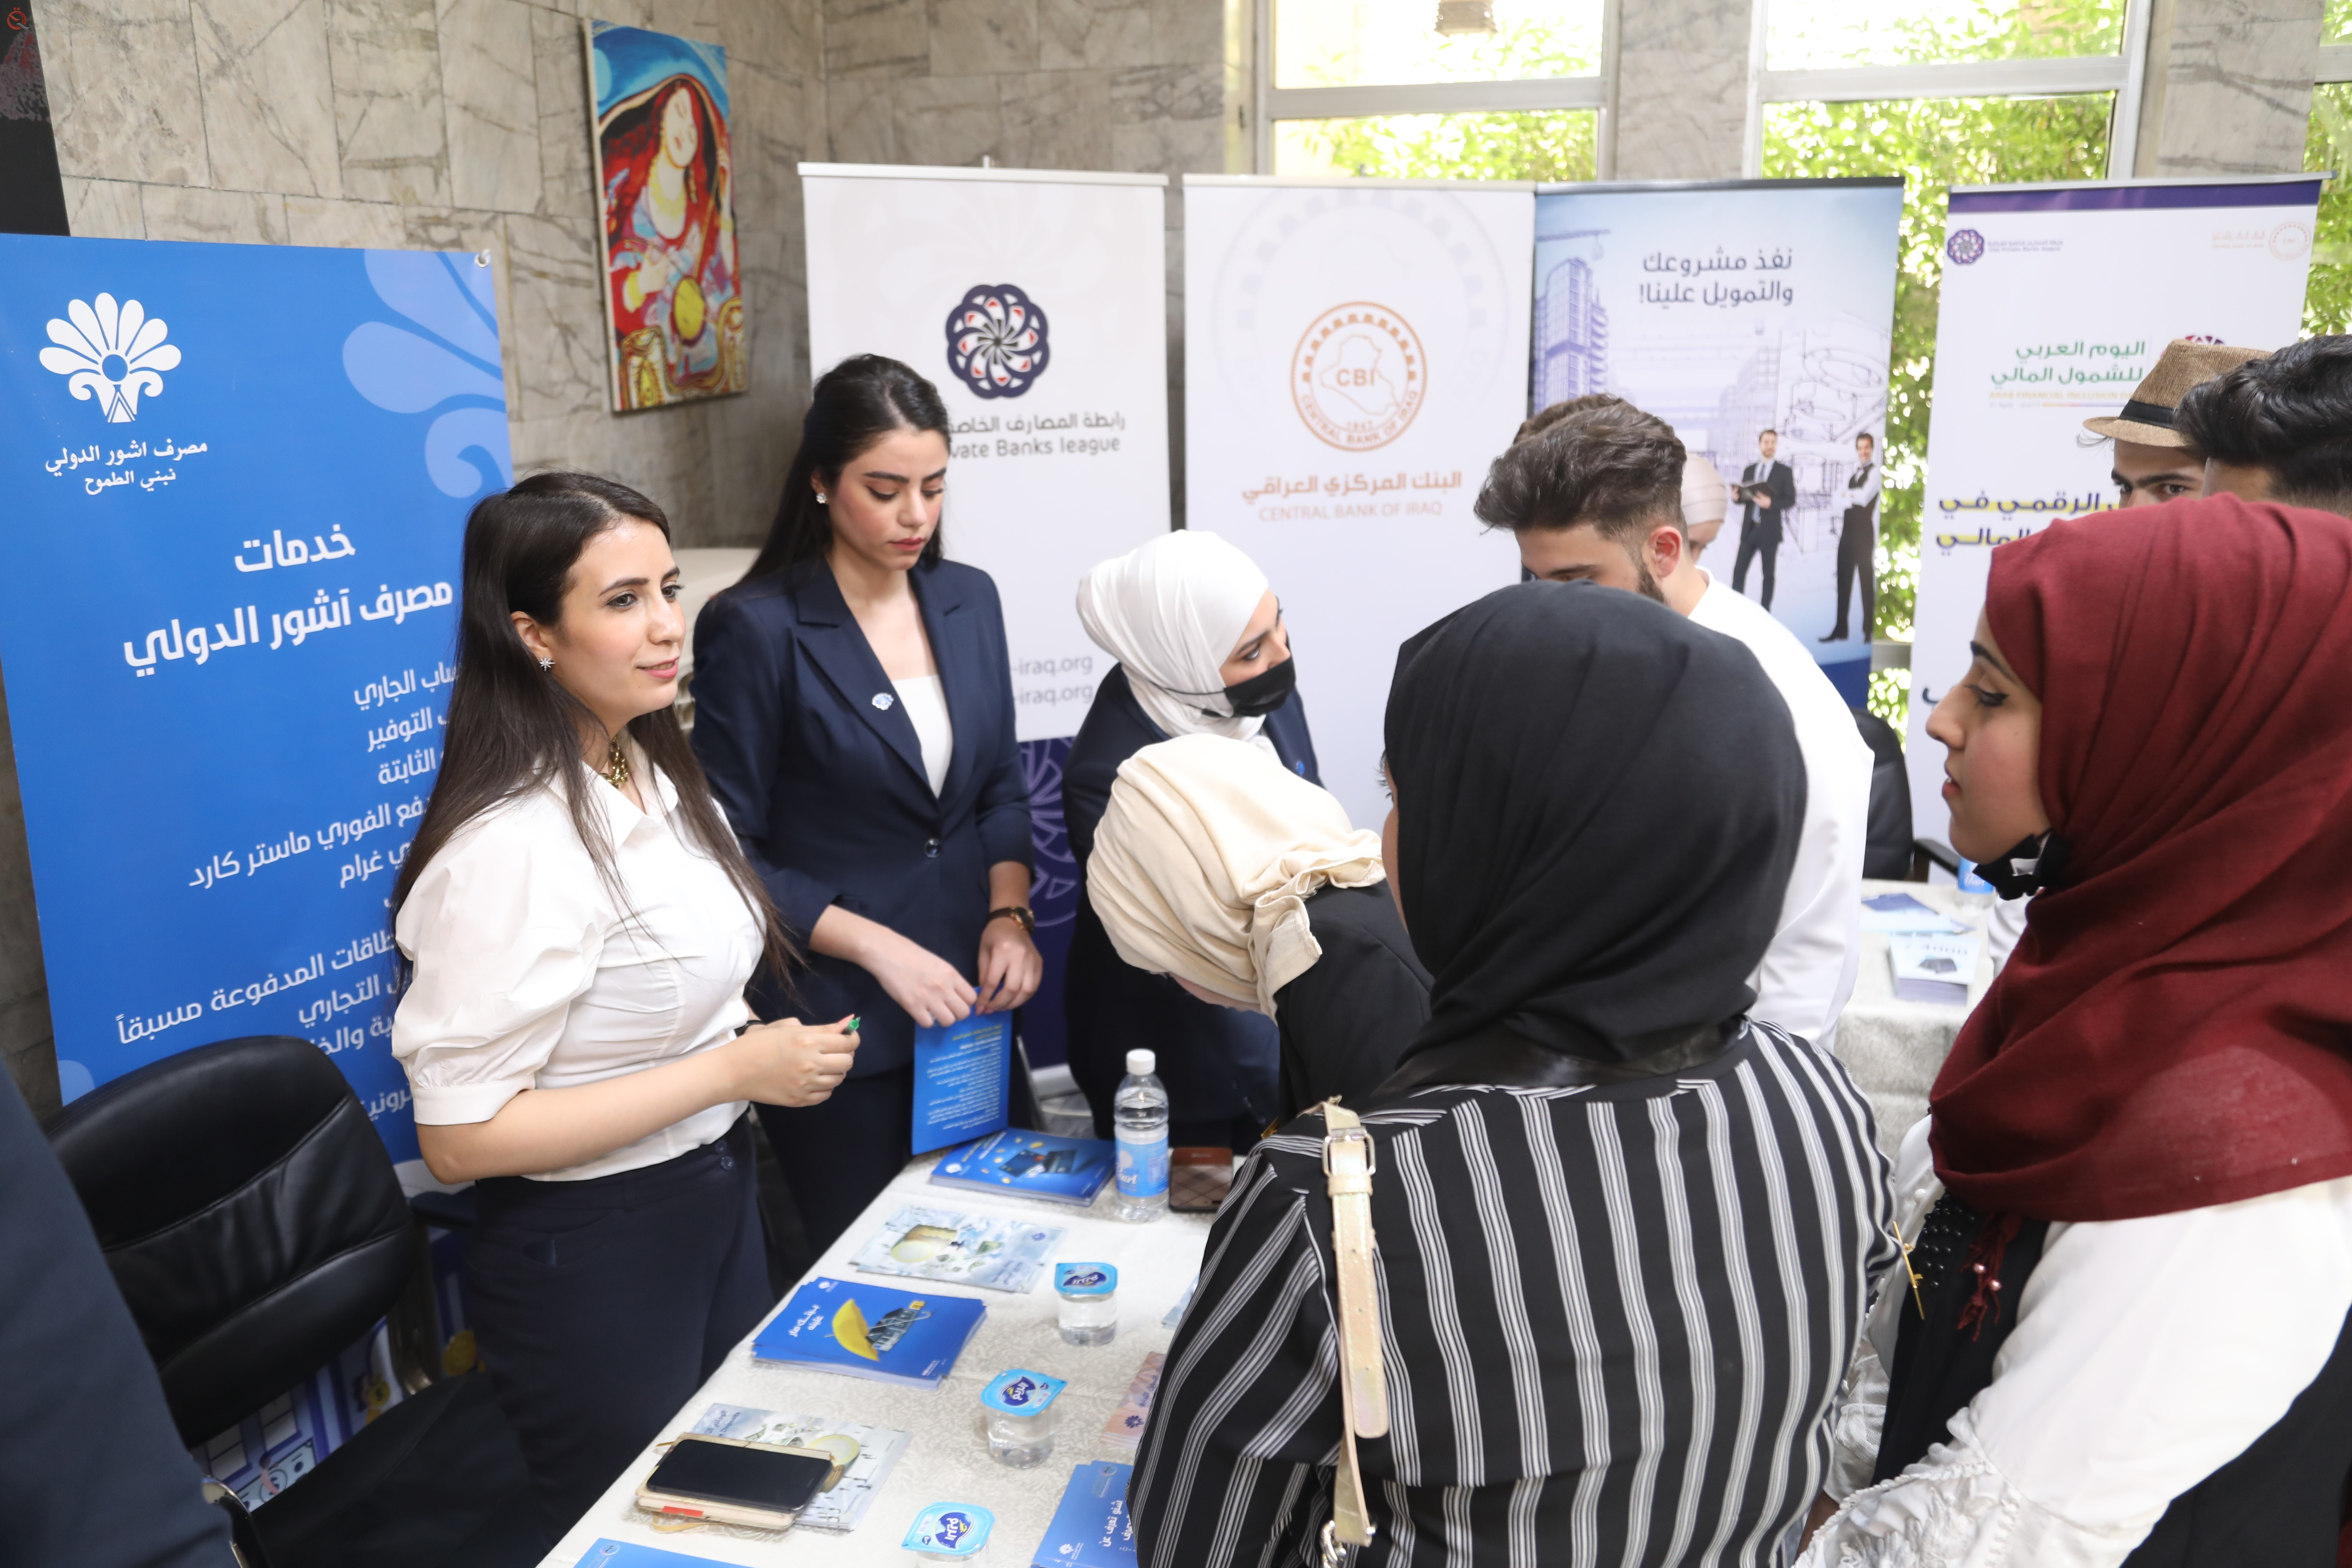 Private Banks Participate in the Entrepreneurship and Innovation Exhibition 27926